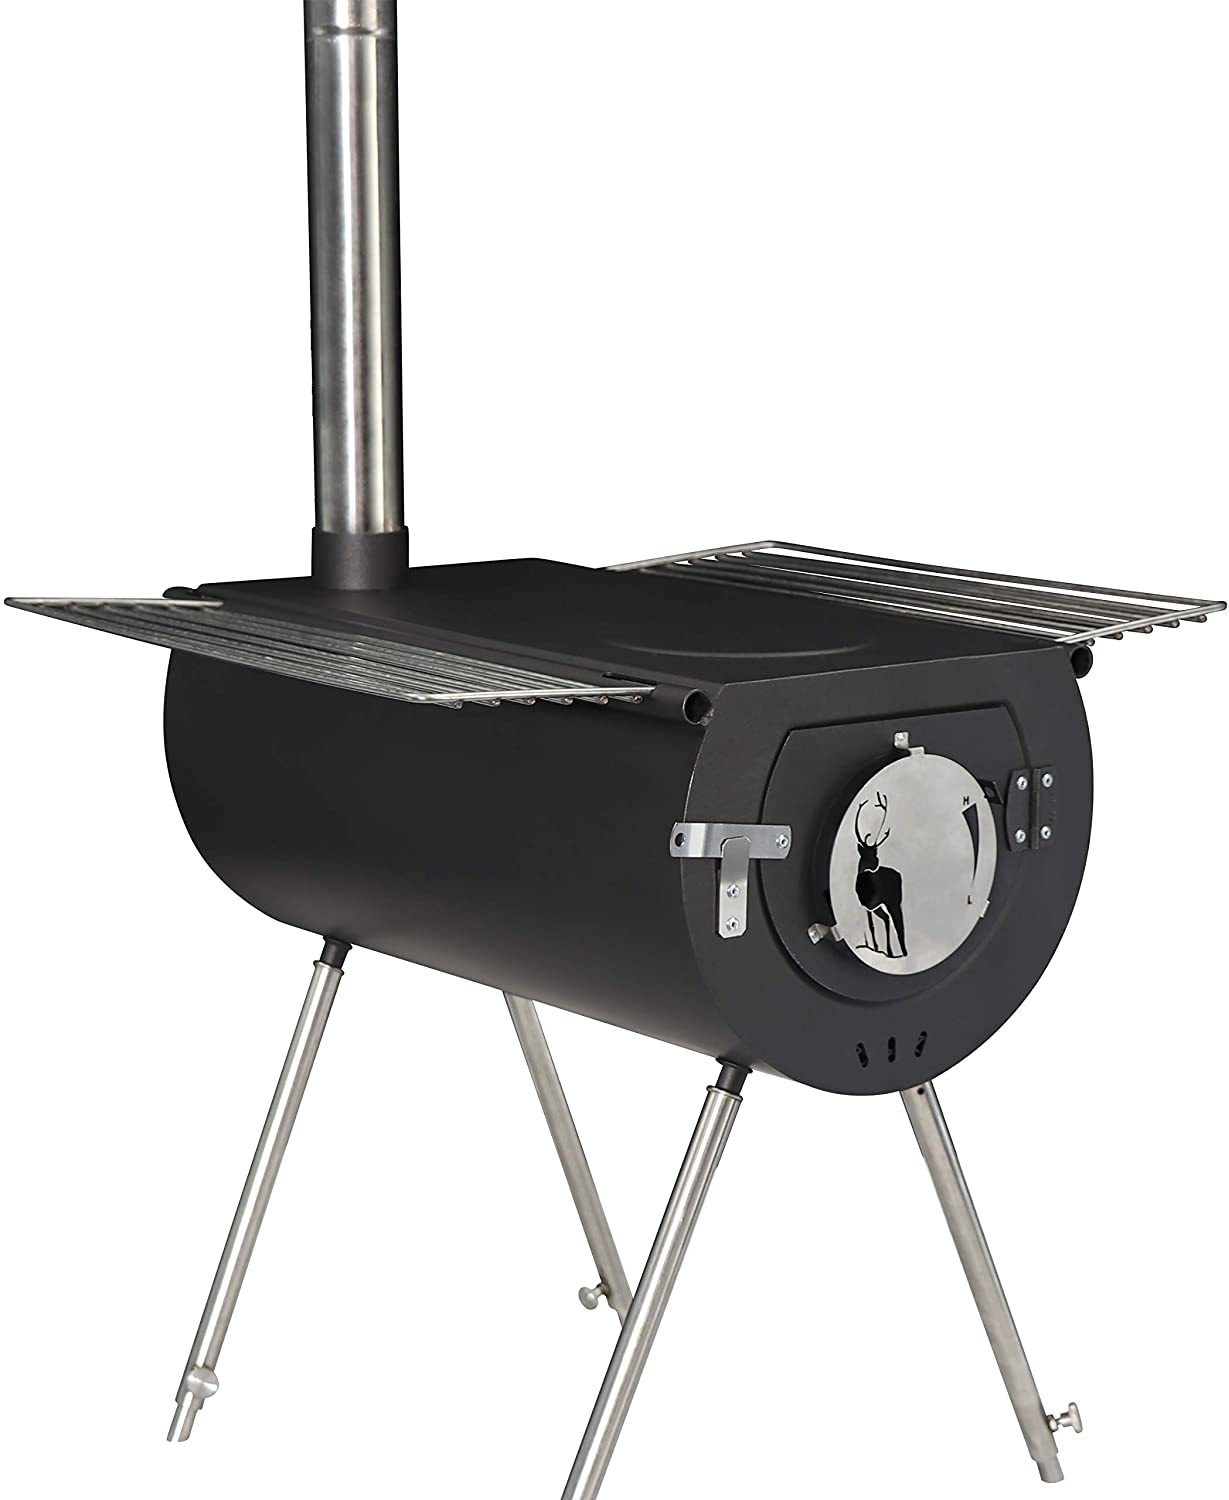 US Stove Caribou Portable Wood Stove